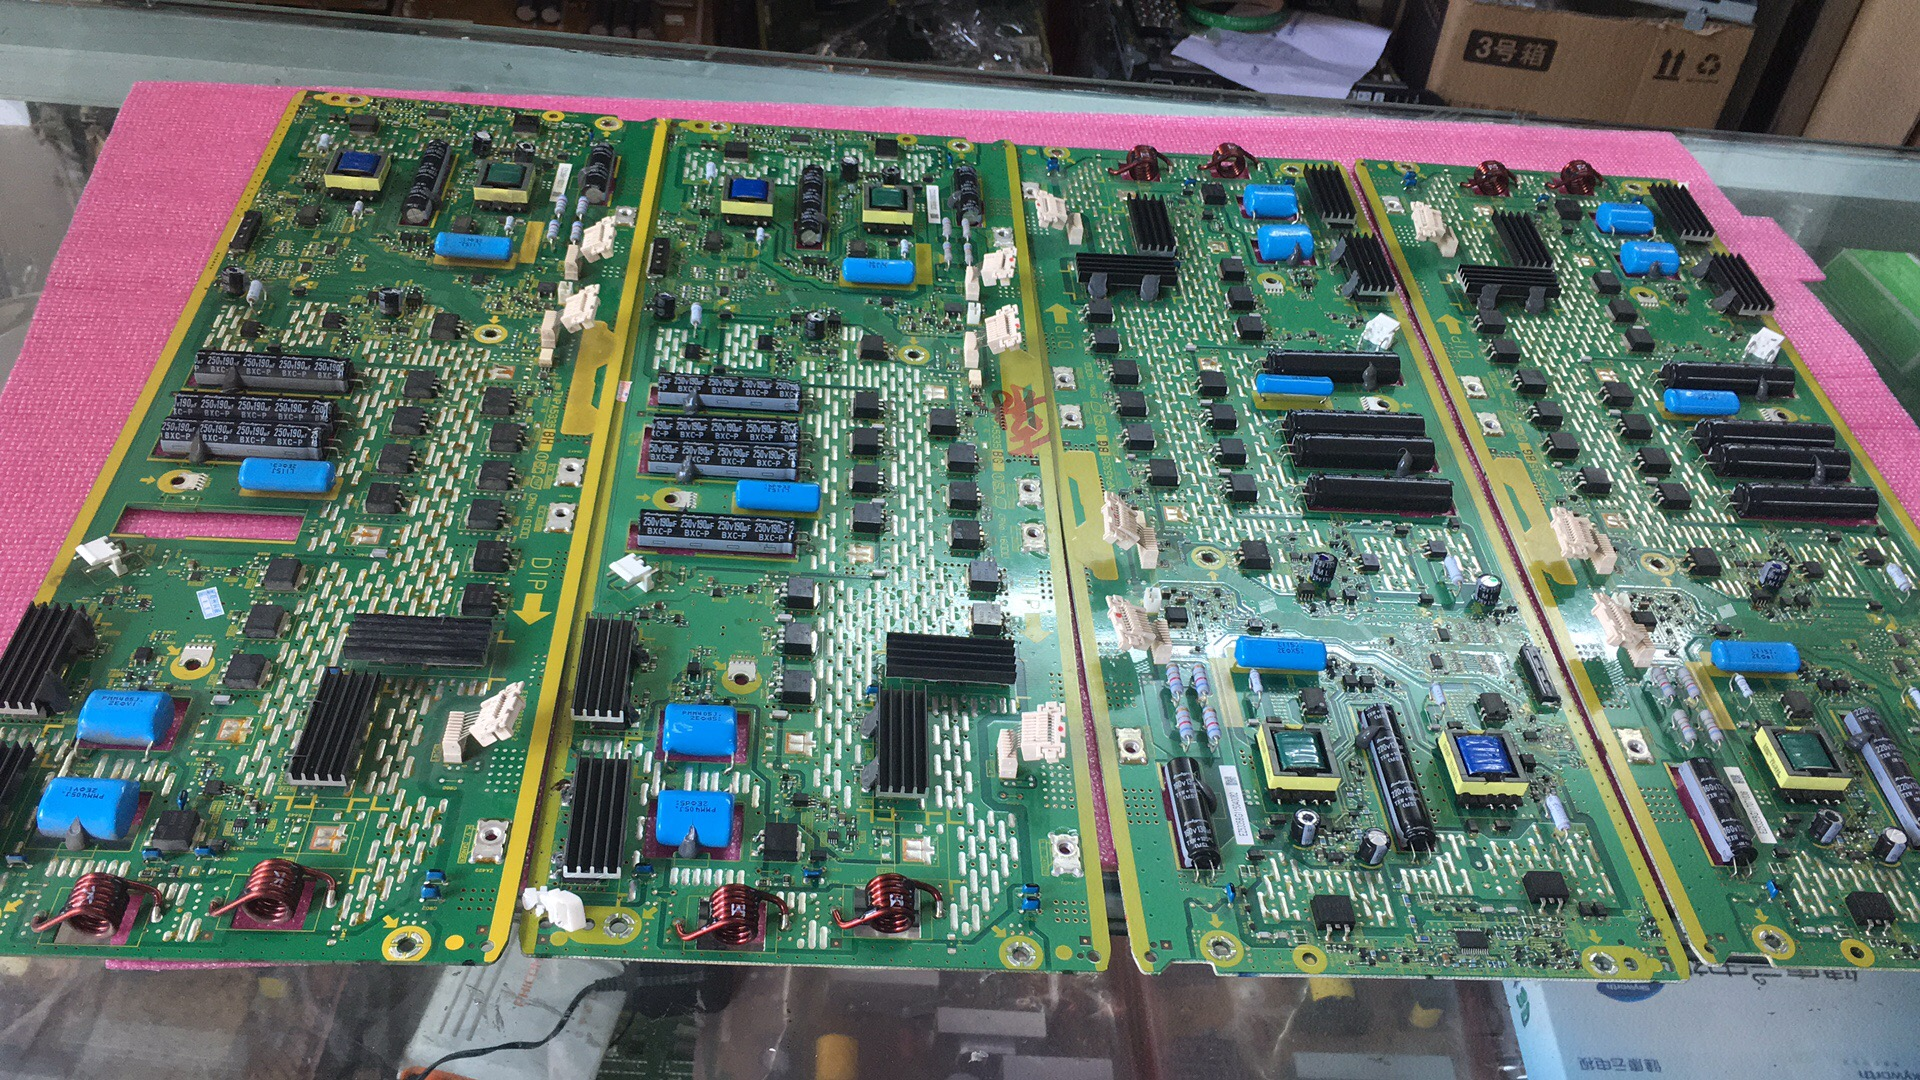 "SC board for Panasonic 46"" plasma TV TX-P46GT30B TNPA5335AH TNPA5335 AH"